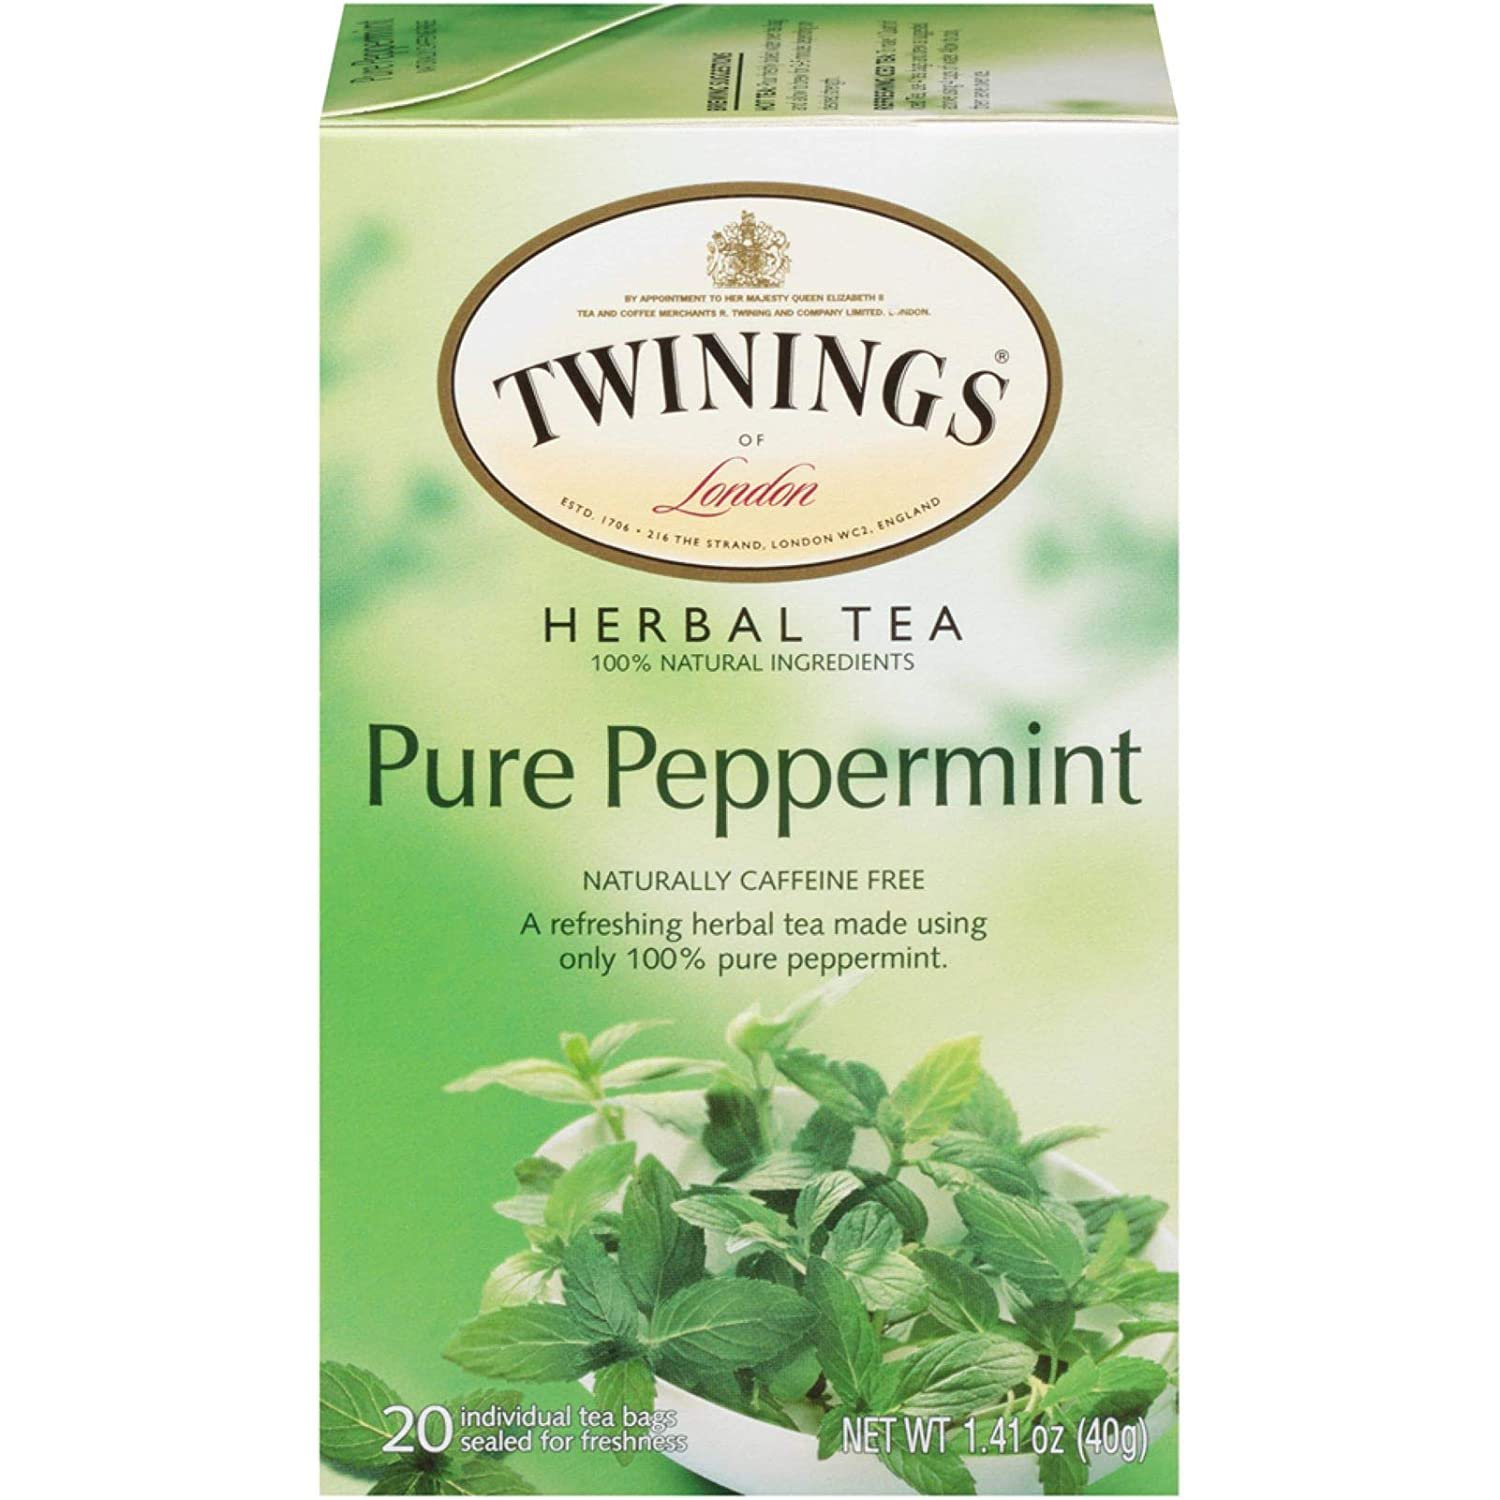 Twinings of London Pure Peppermint Herbal Tea Bags, 20 Count X2 Box Pack From UK